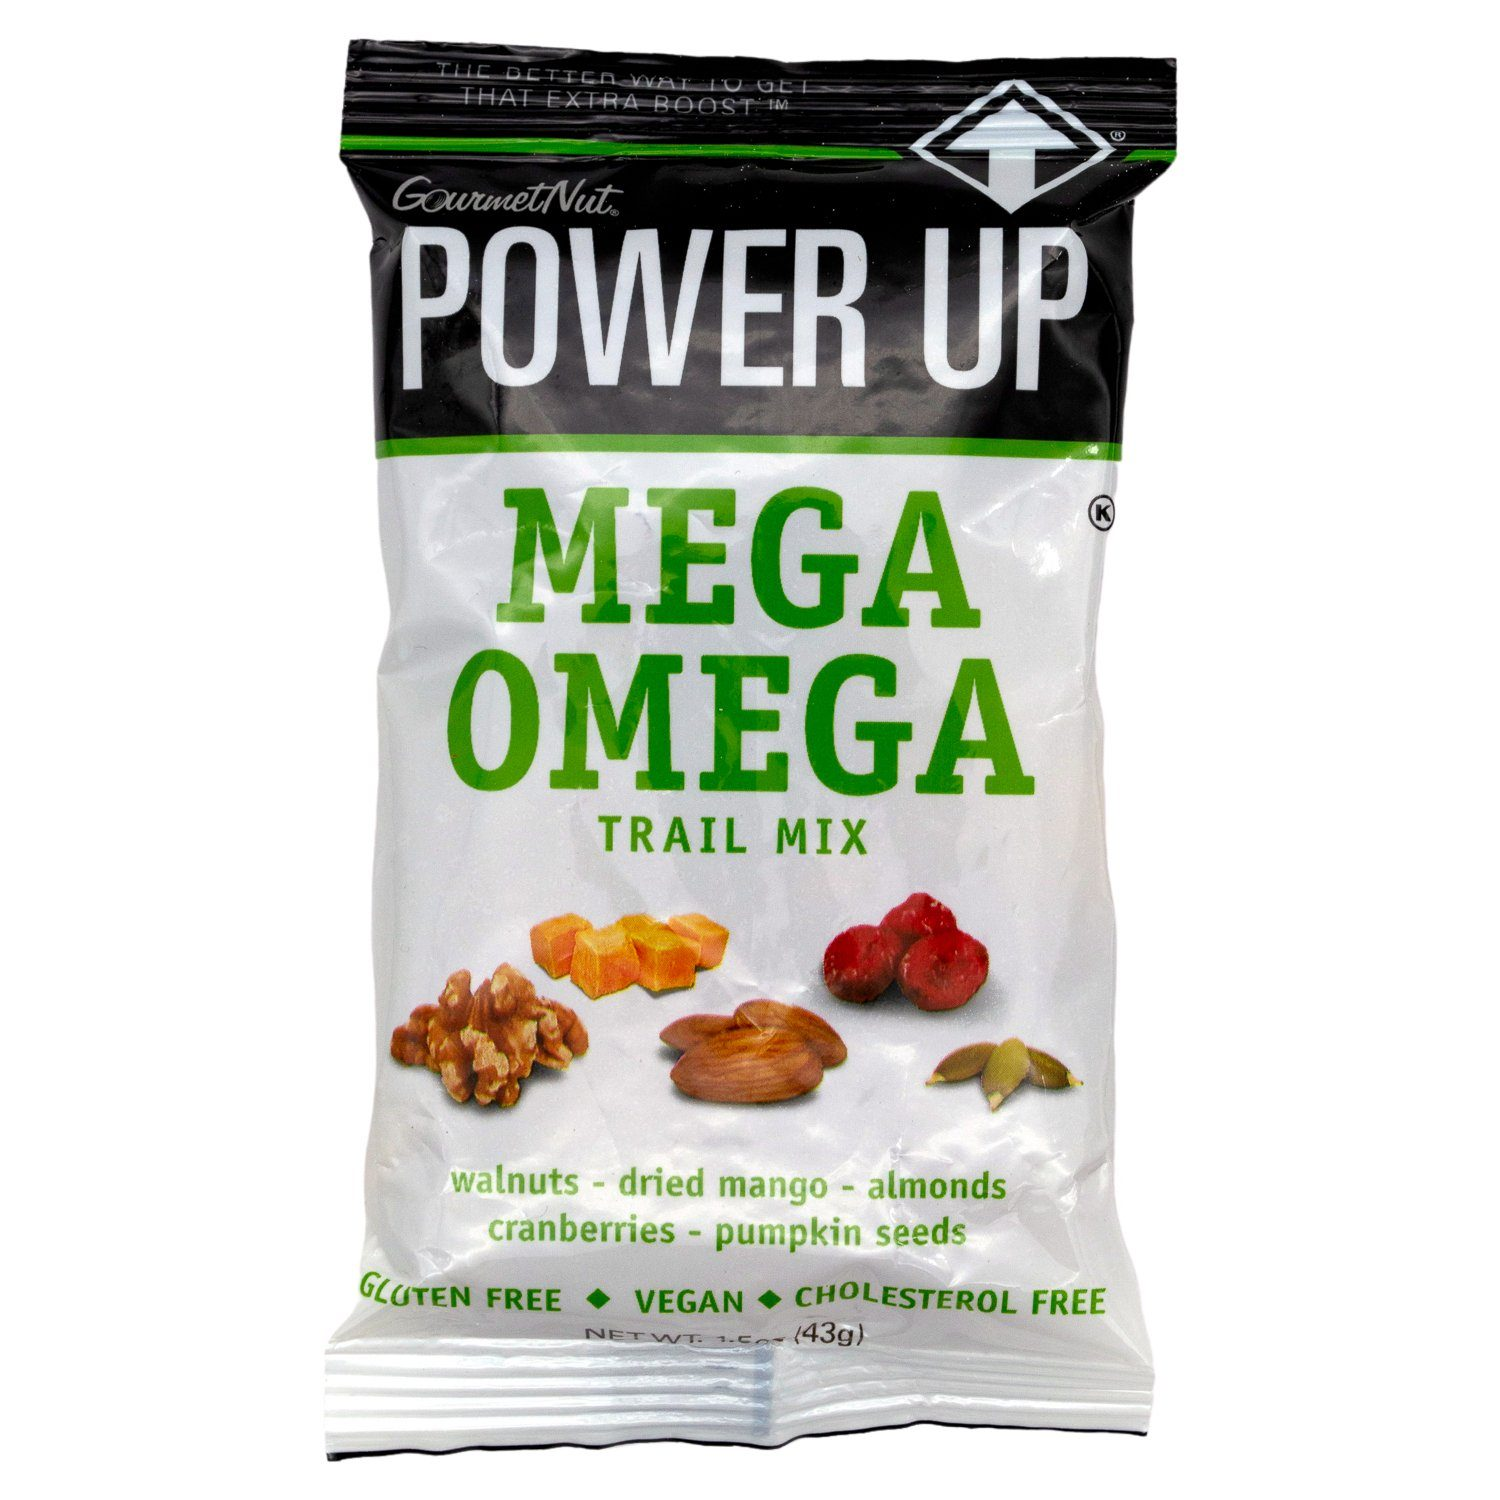 Power Up Trail Mix Gourmet Nut Mega Omega 1.5 Ounce